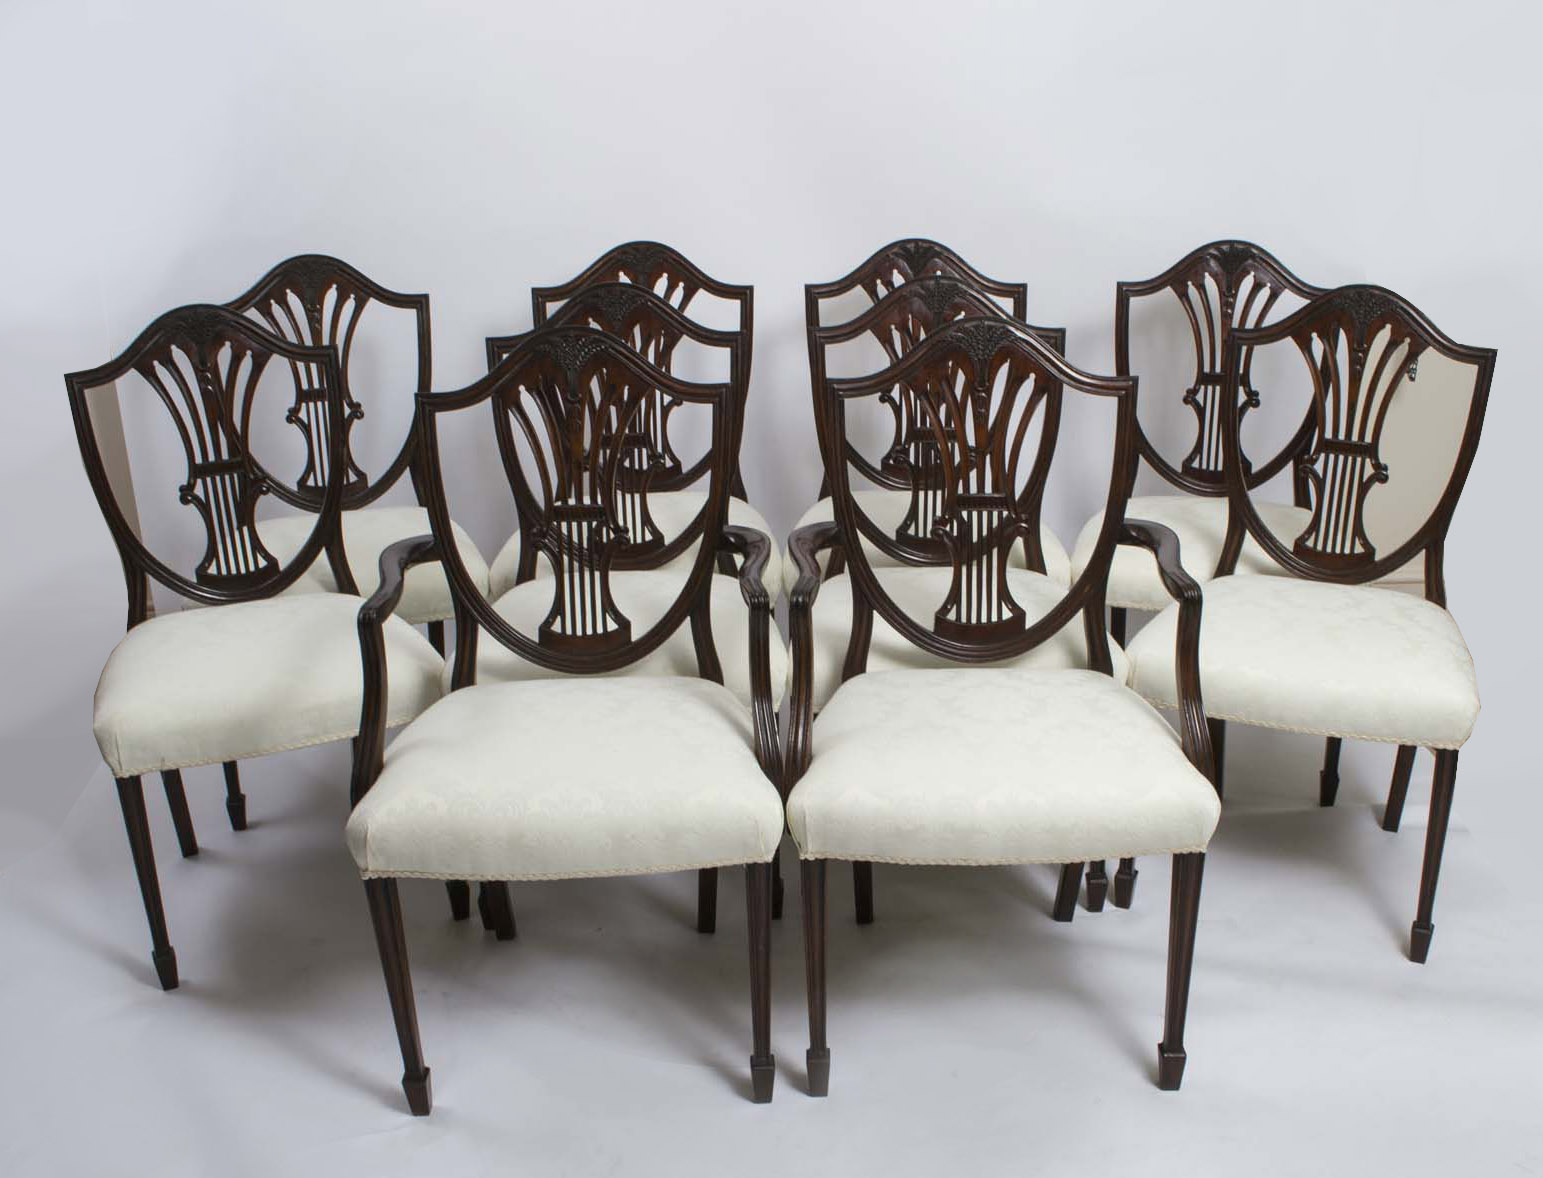 - Antique Set 10 Shieldback Mahogany Dining Chairs C.1900 Ref. No. 06285